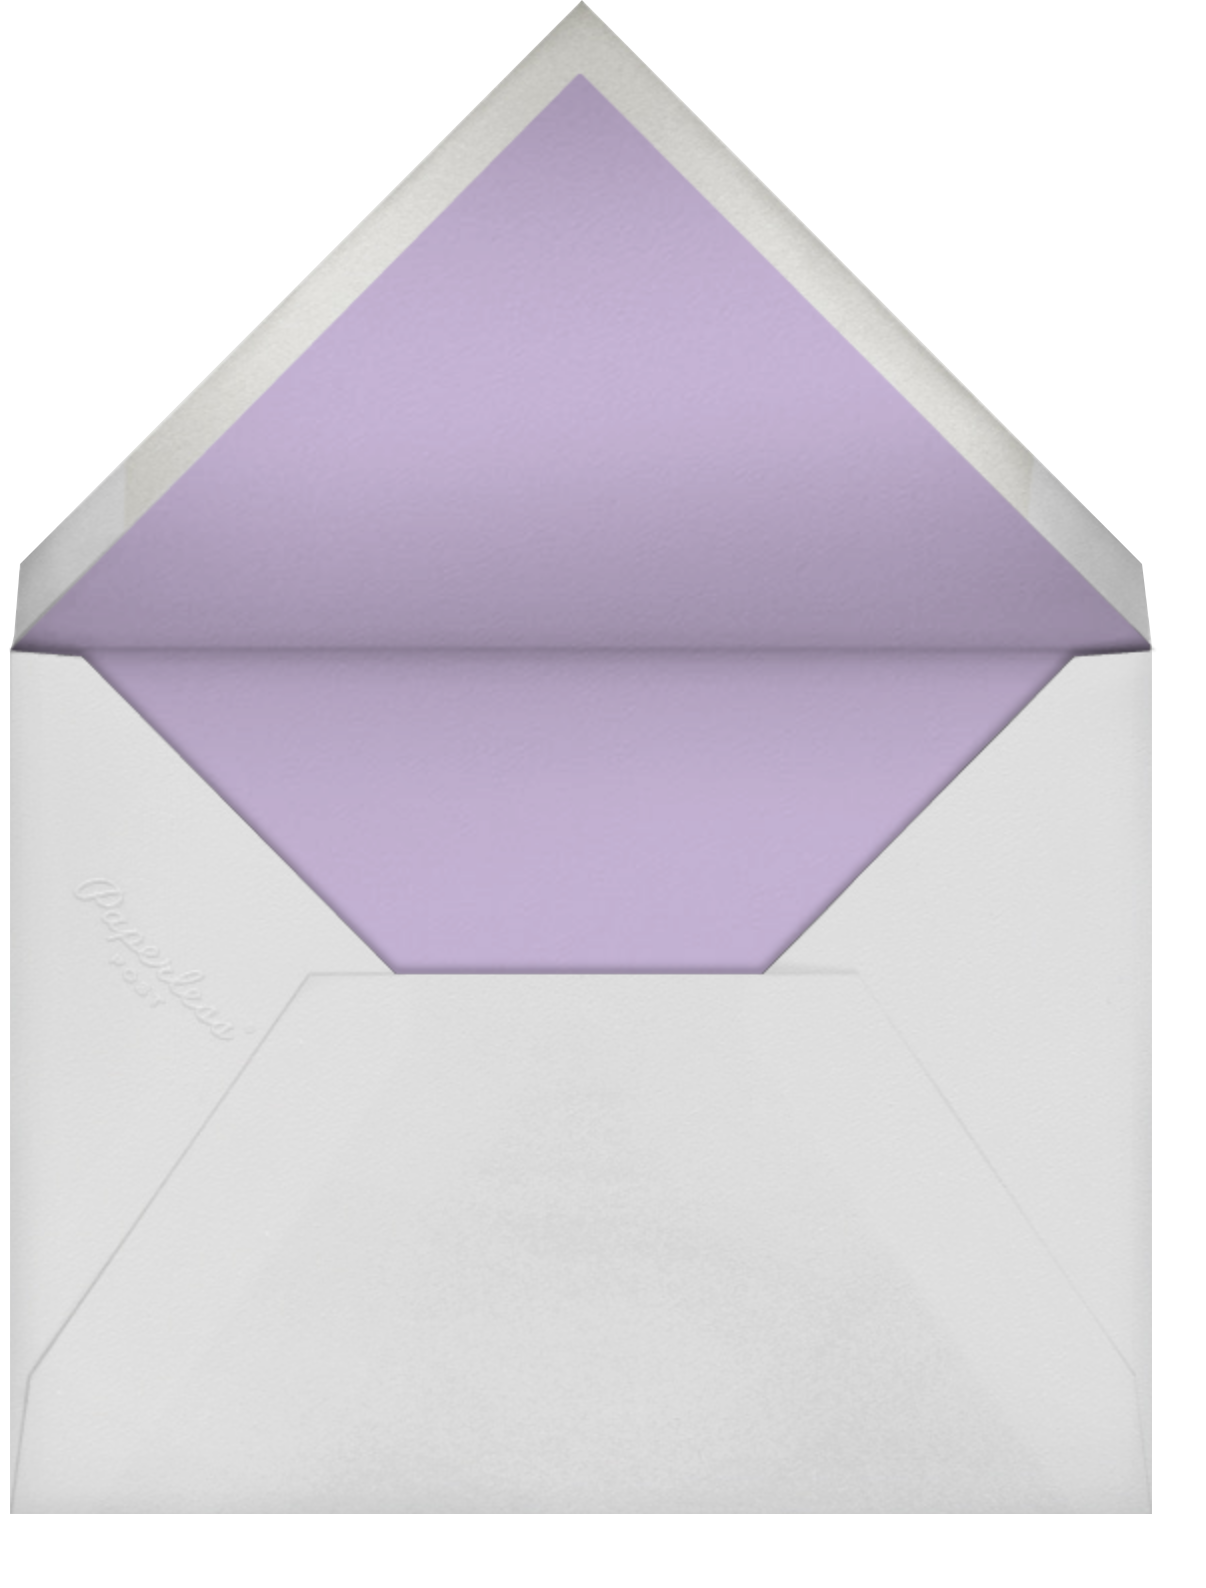 Fauve Border - kate spade new york - Easter - envelope back